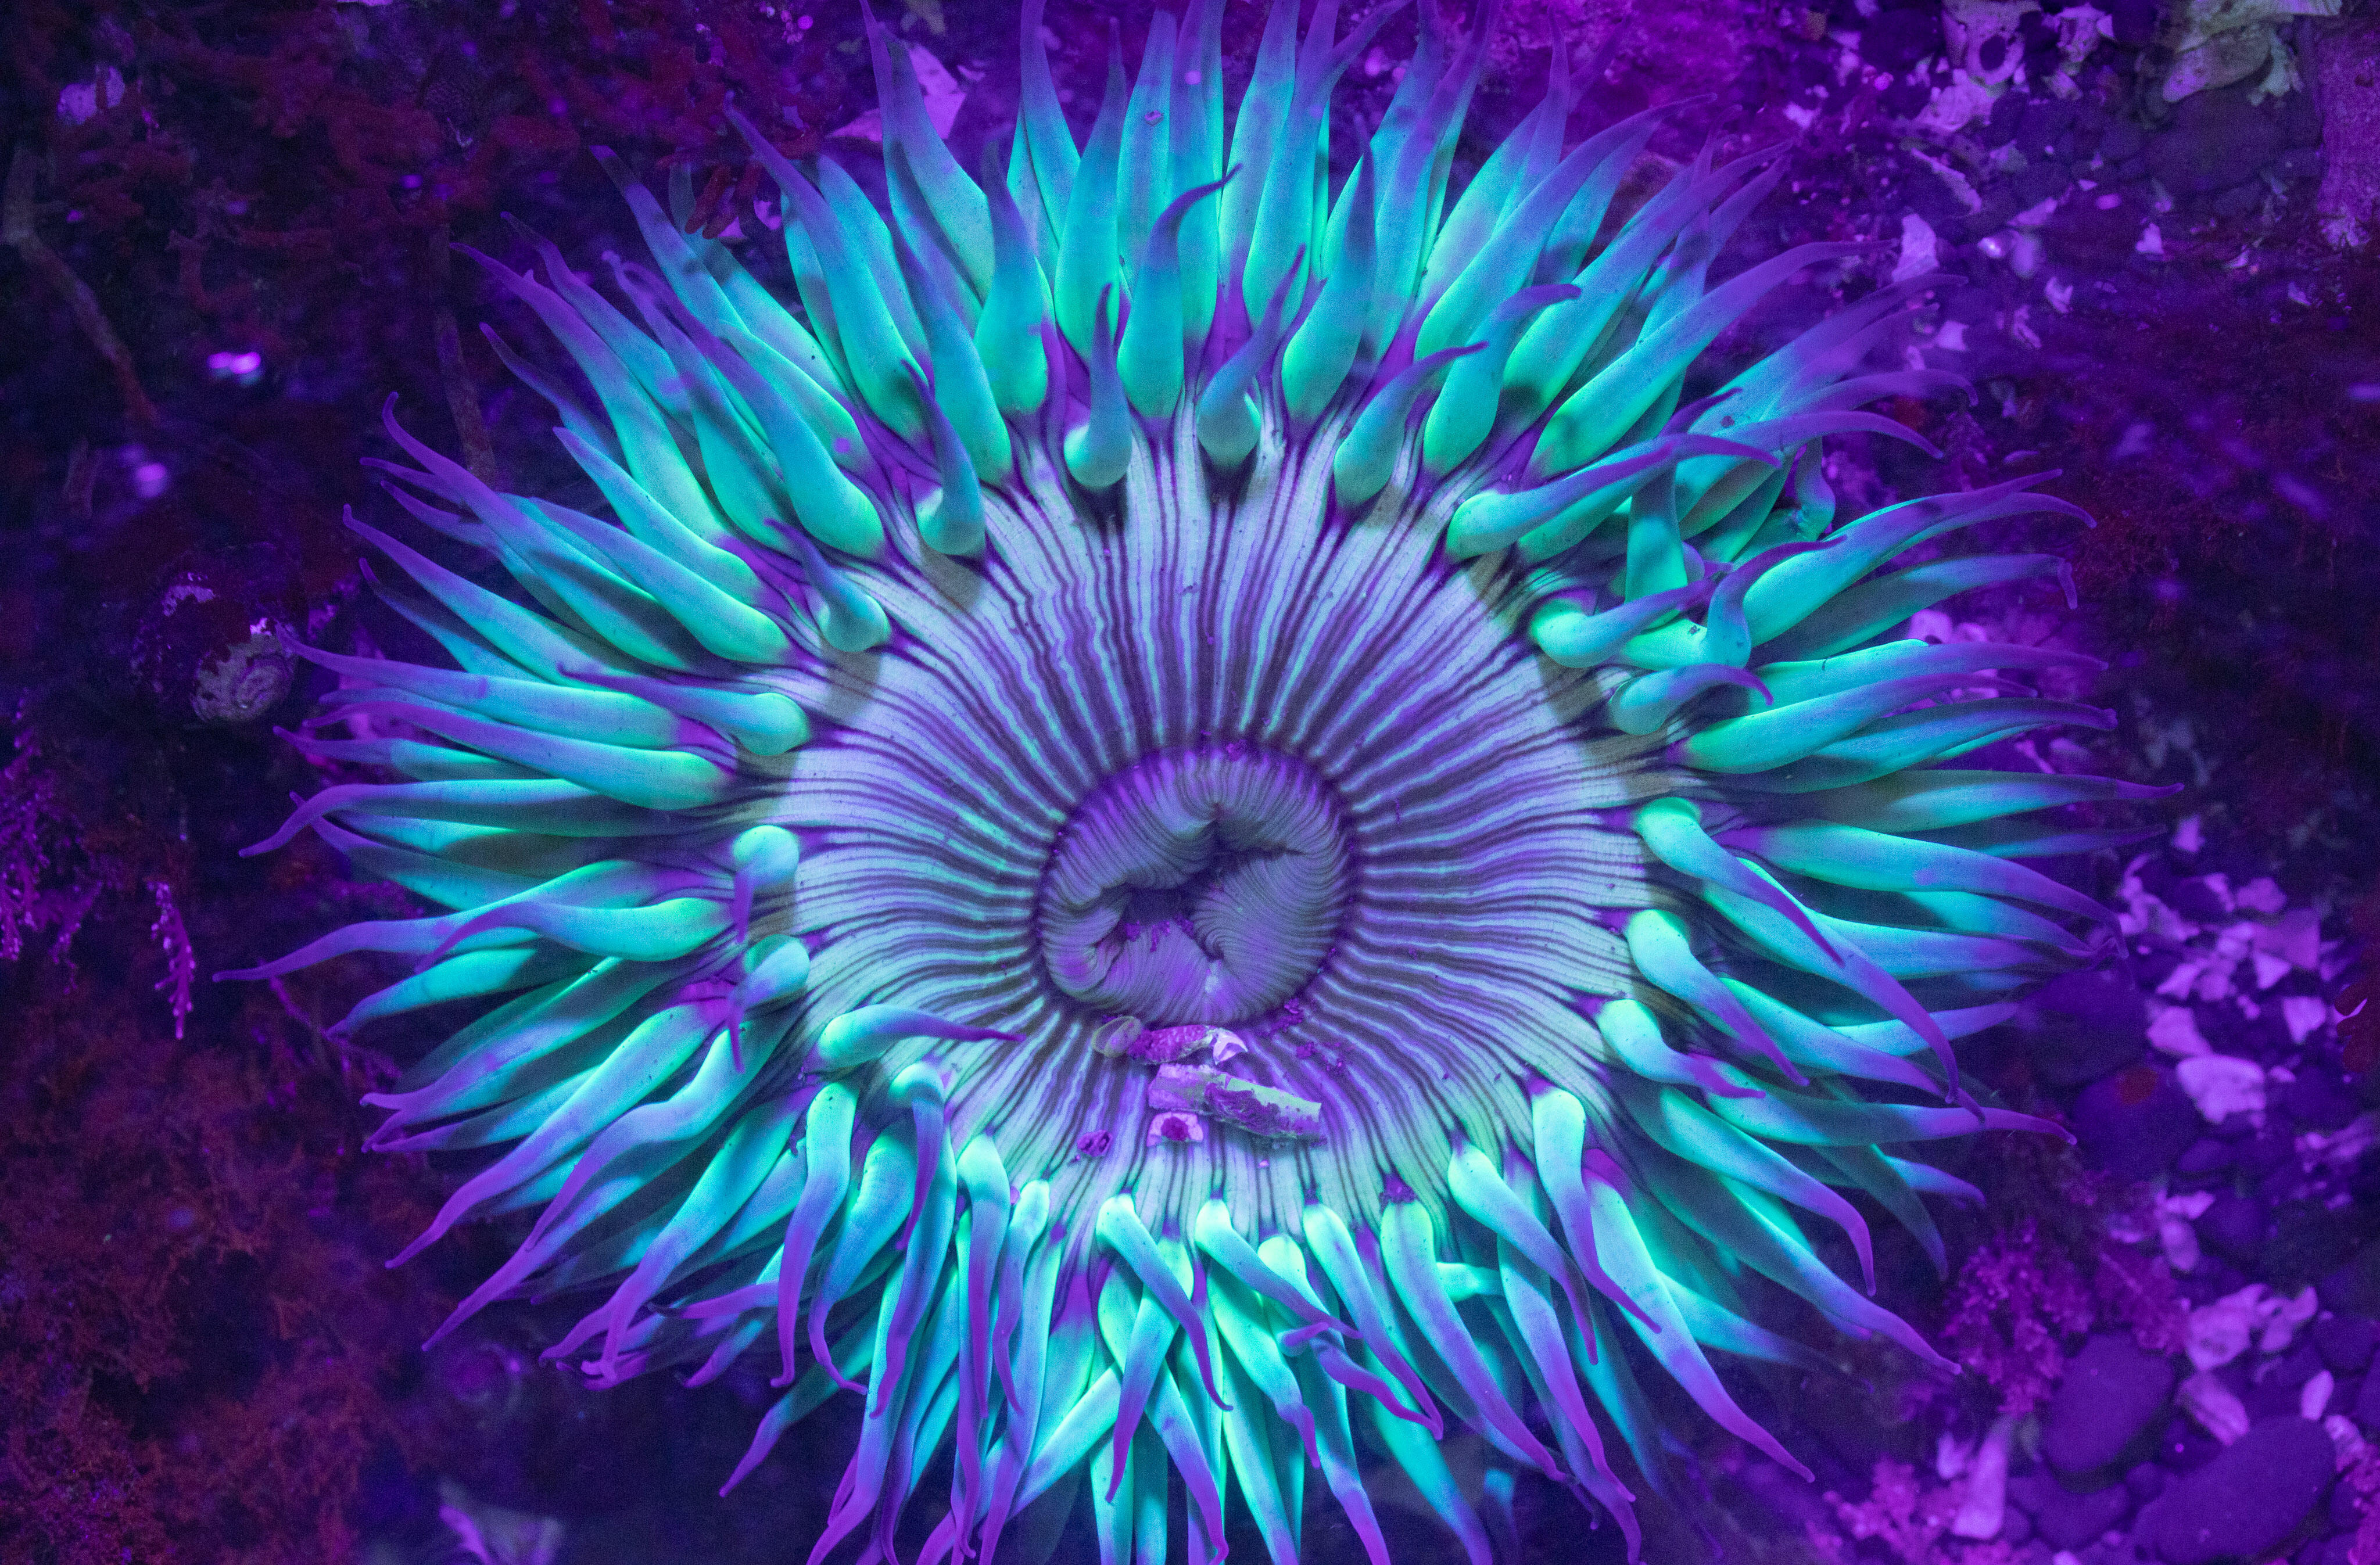 A sunburst sea anemone illuminated by ultaviolet fluoresces with bright colors in a tide pool at Pillar Point near Half Moon Bay, California.